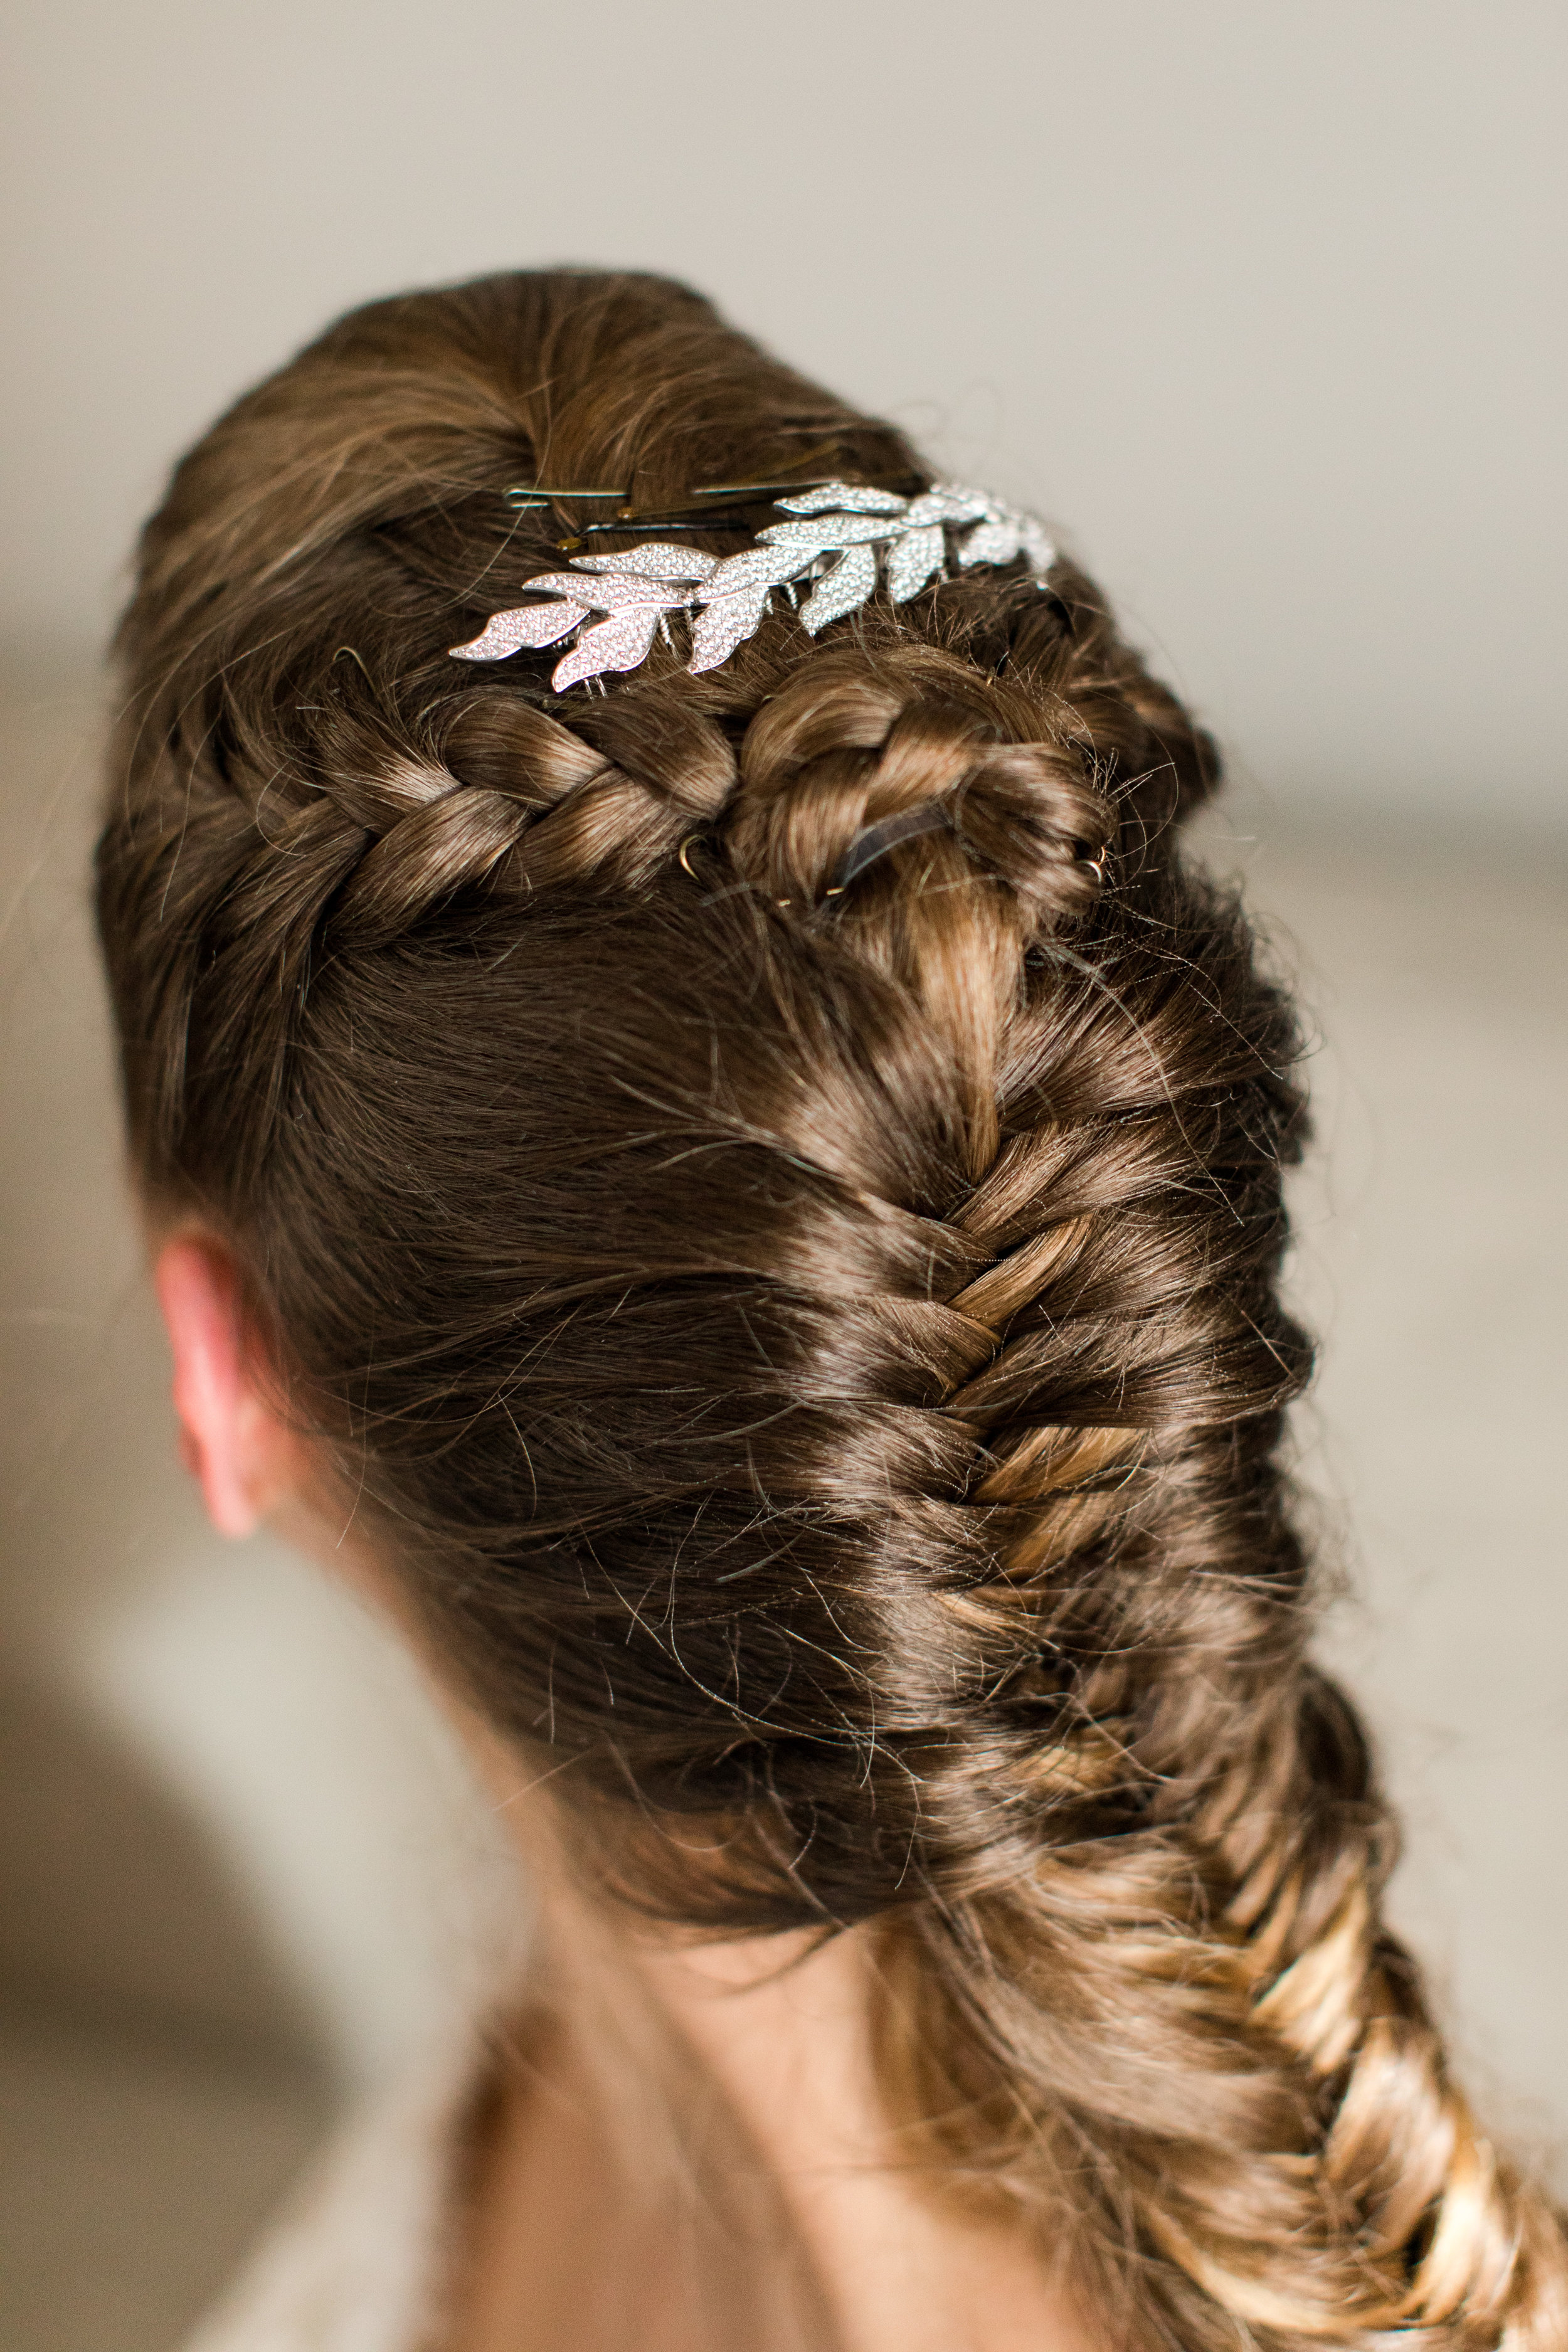 braided bridal hair with laurel comb detail